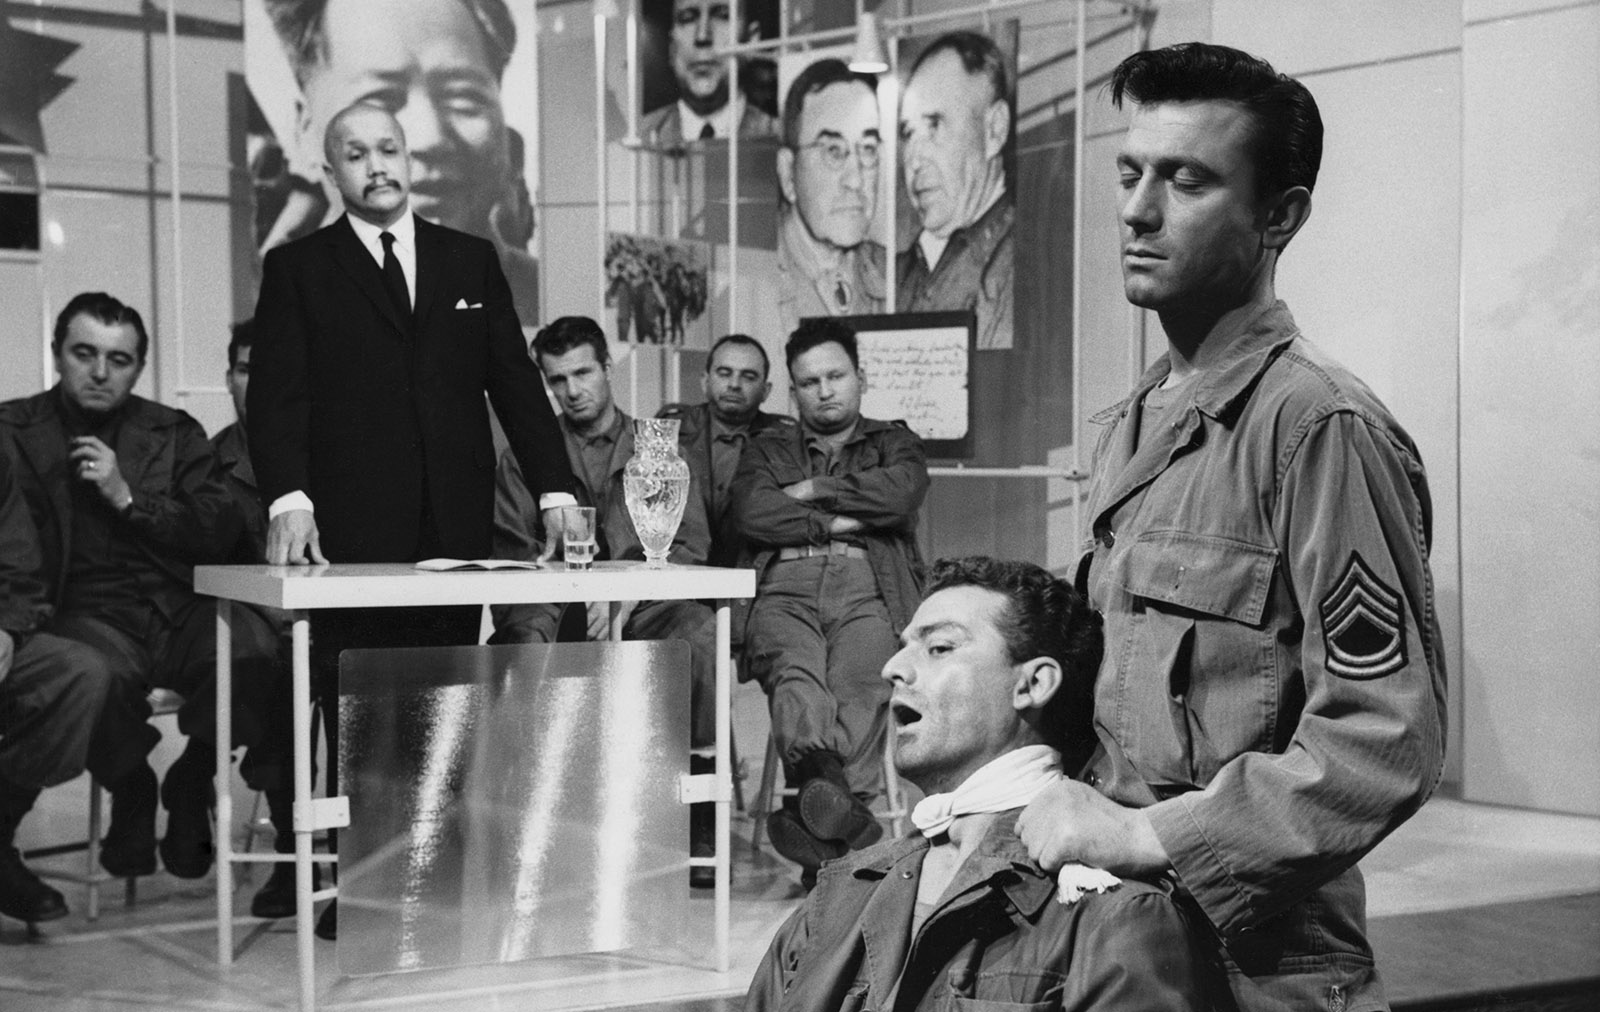 manchurian candidate psychological analysis The manchurian candidate is a 1962 hollywood film based on the idea that  it represented a new psychological twist  the film defied plot analysis or genre .